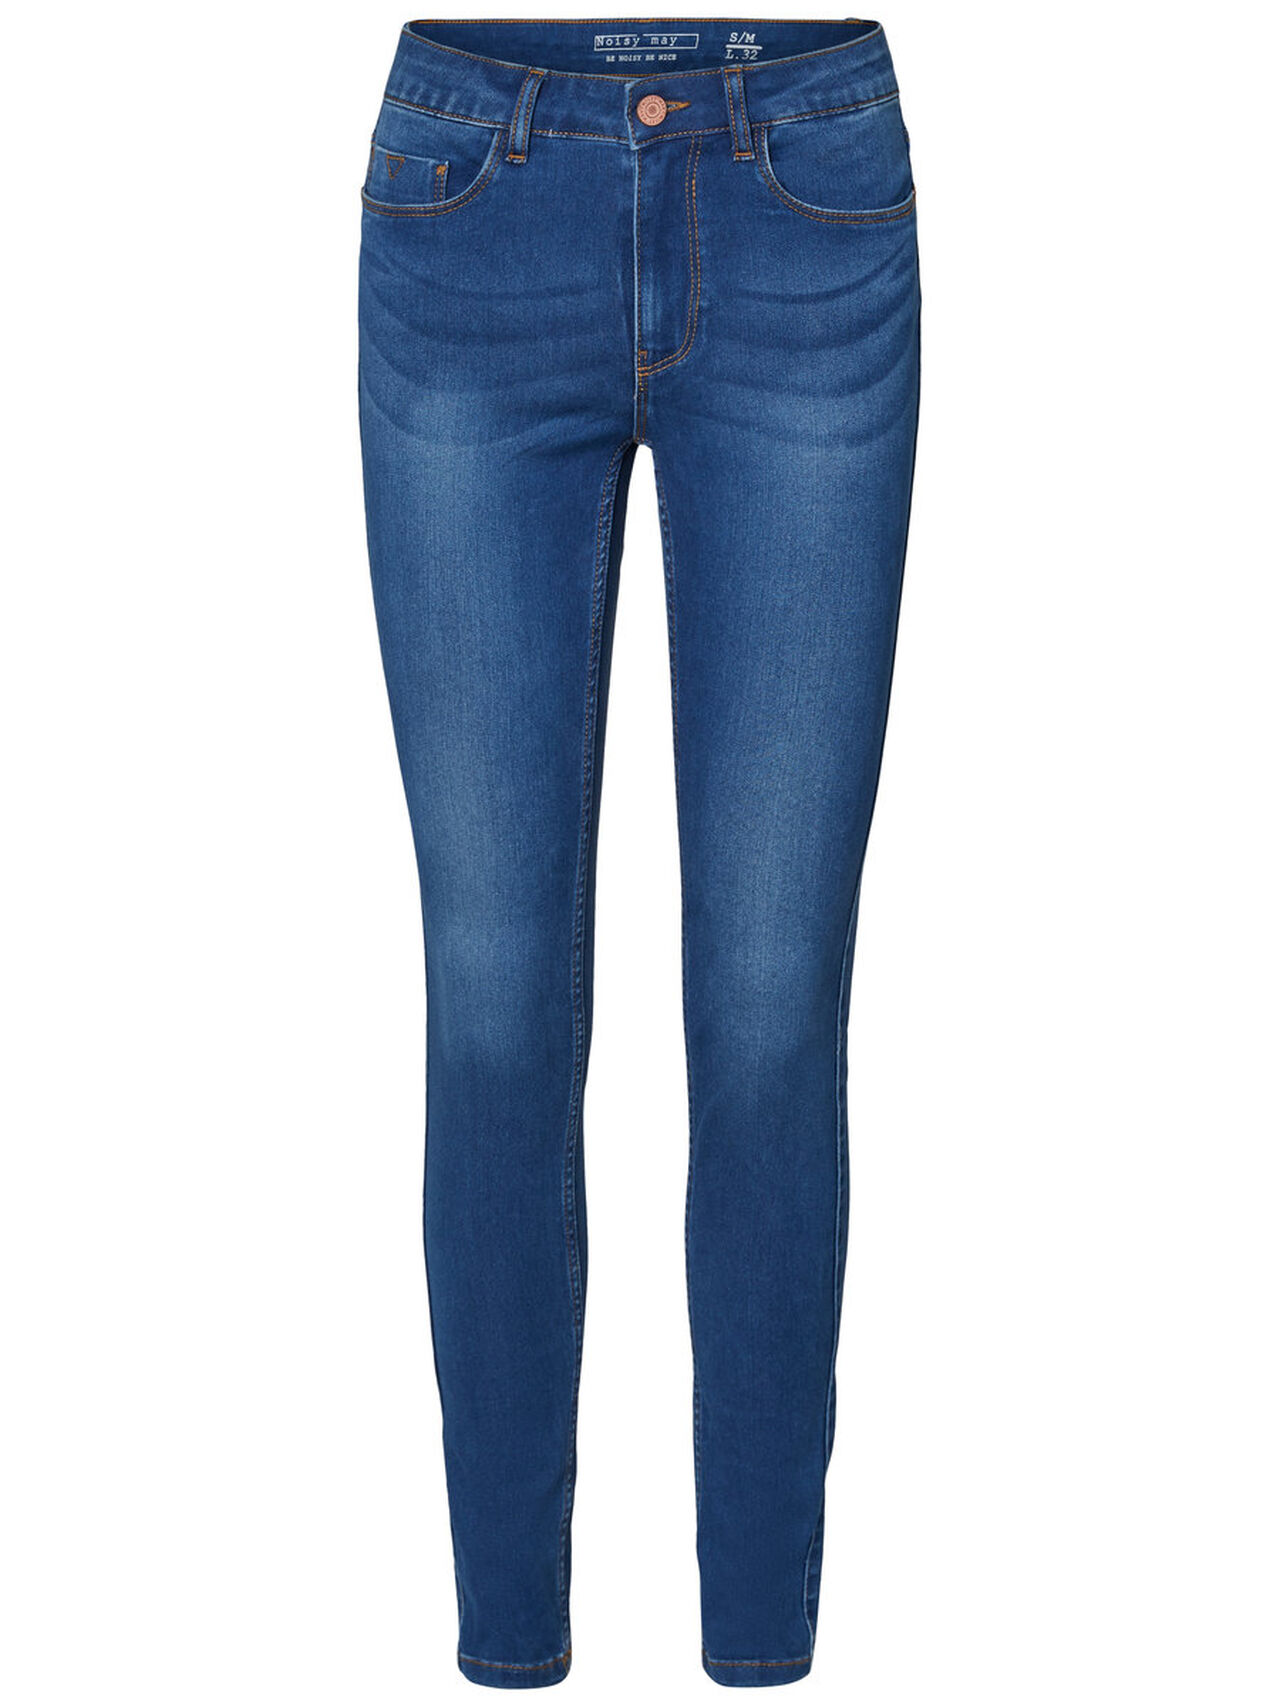 NOISY MAY Extreme Nw Soft Skinny Fit Jeans Damen Blau